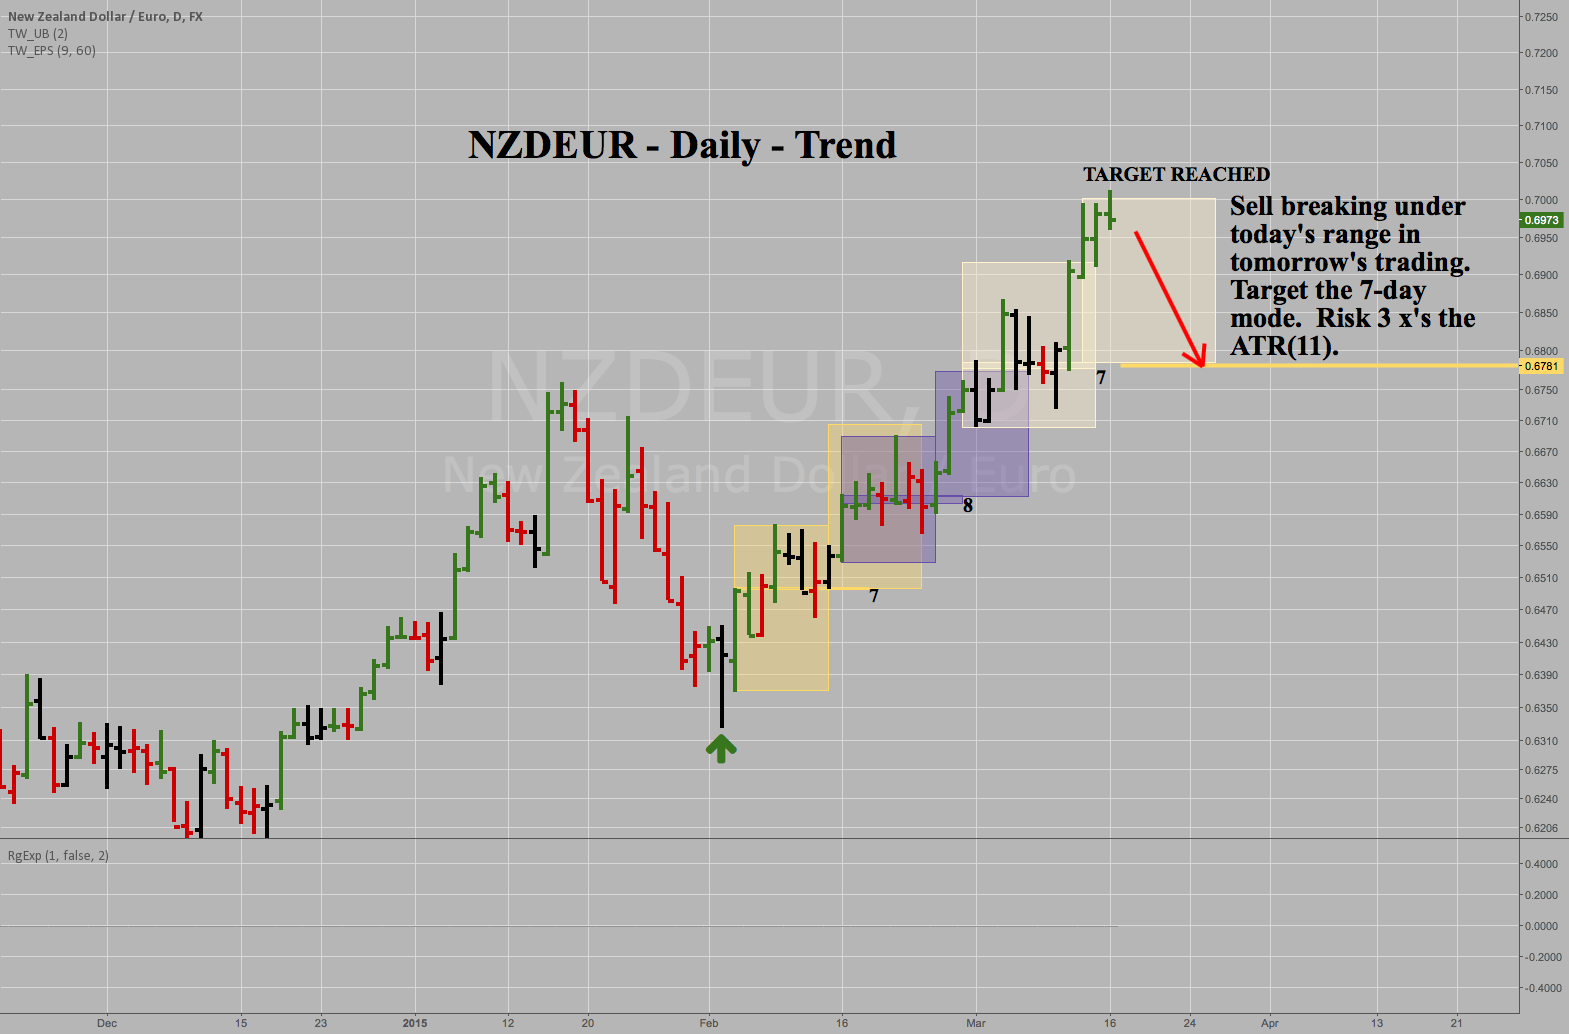 NZDEUR - Daily - Aggressive Short Sale